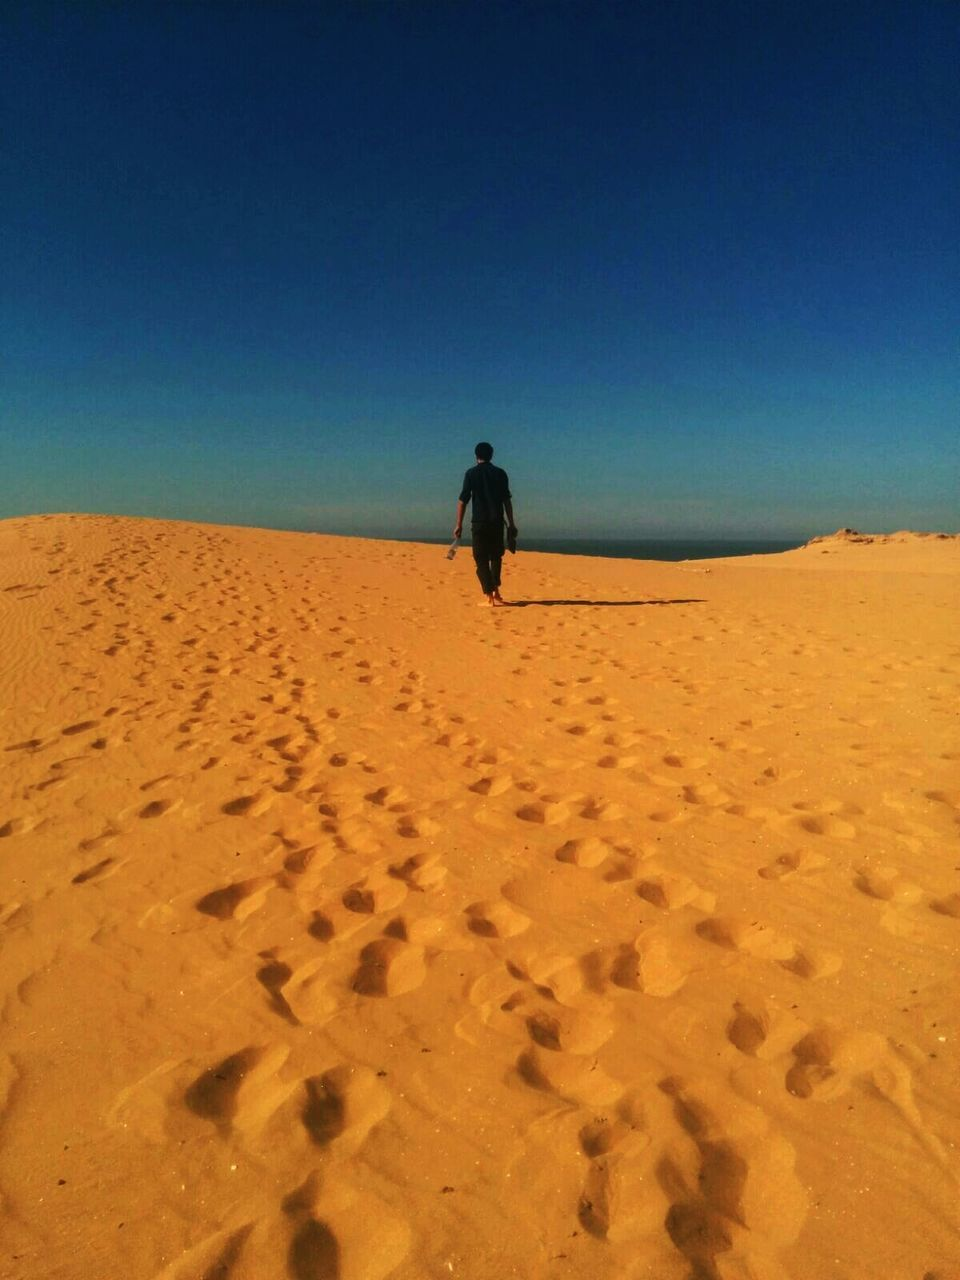 sand, one person, desert, arid climate, nature, landscape, clear sky, full length, sand dune, tranquil scene, walking, outdoors, real people, rear view, scenics, day, leisure activity, beach, sky, blue, lifestyles, vacations, women, beauty in nature, mammal, people